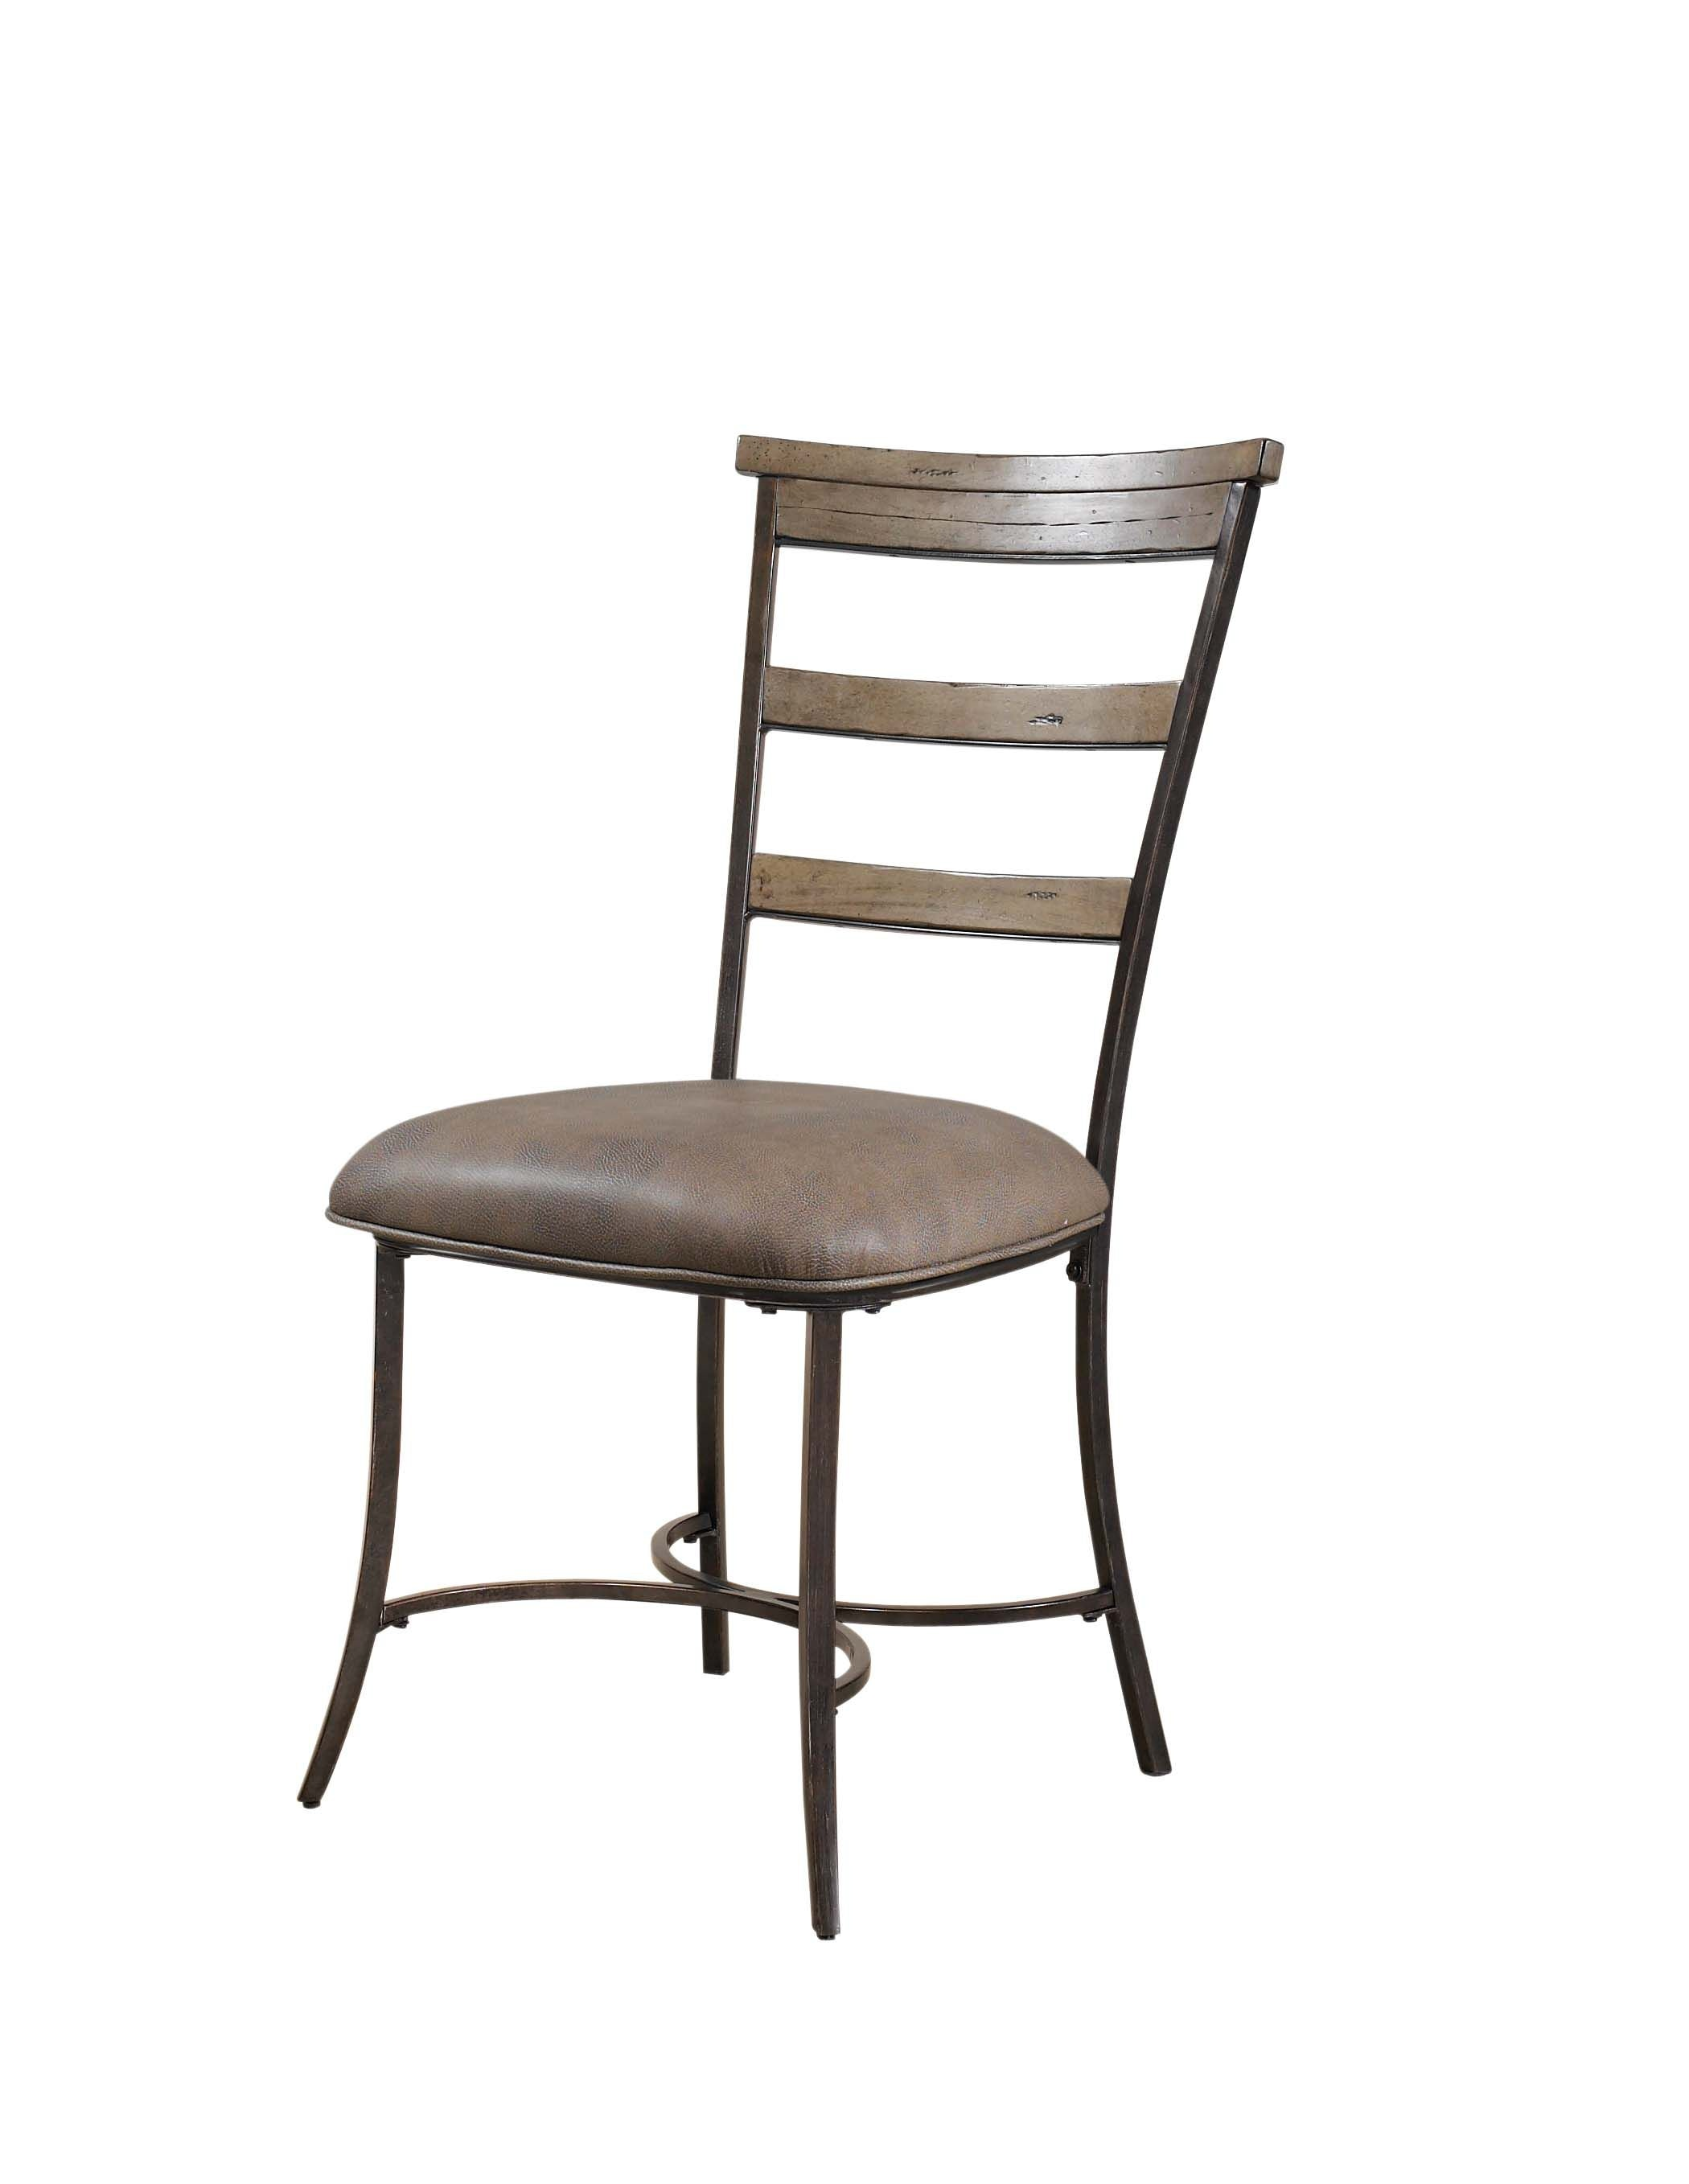 Hillsdale Furniture Charleston Ladder Back Dining Chair 4670 805